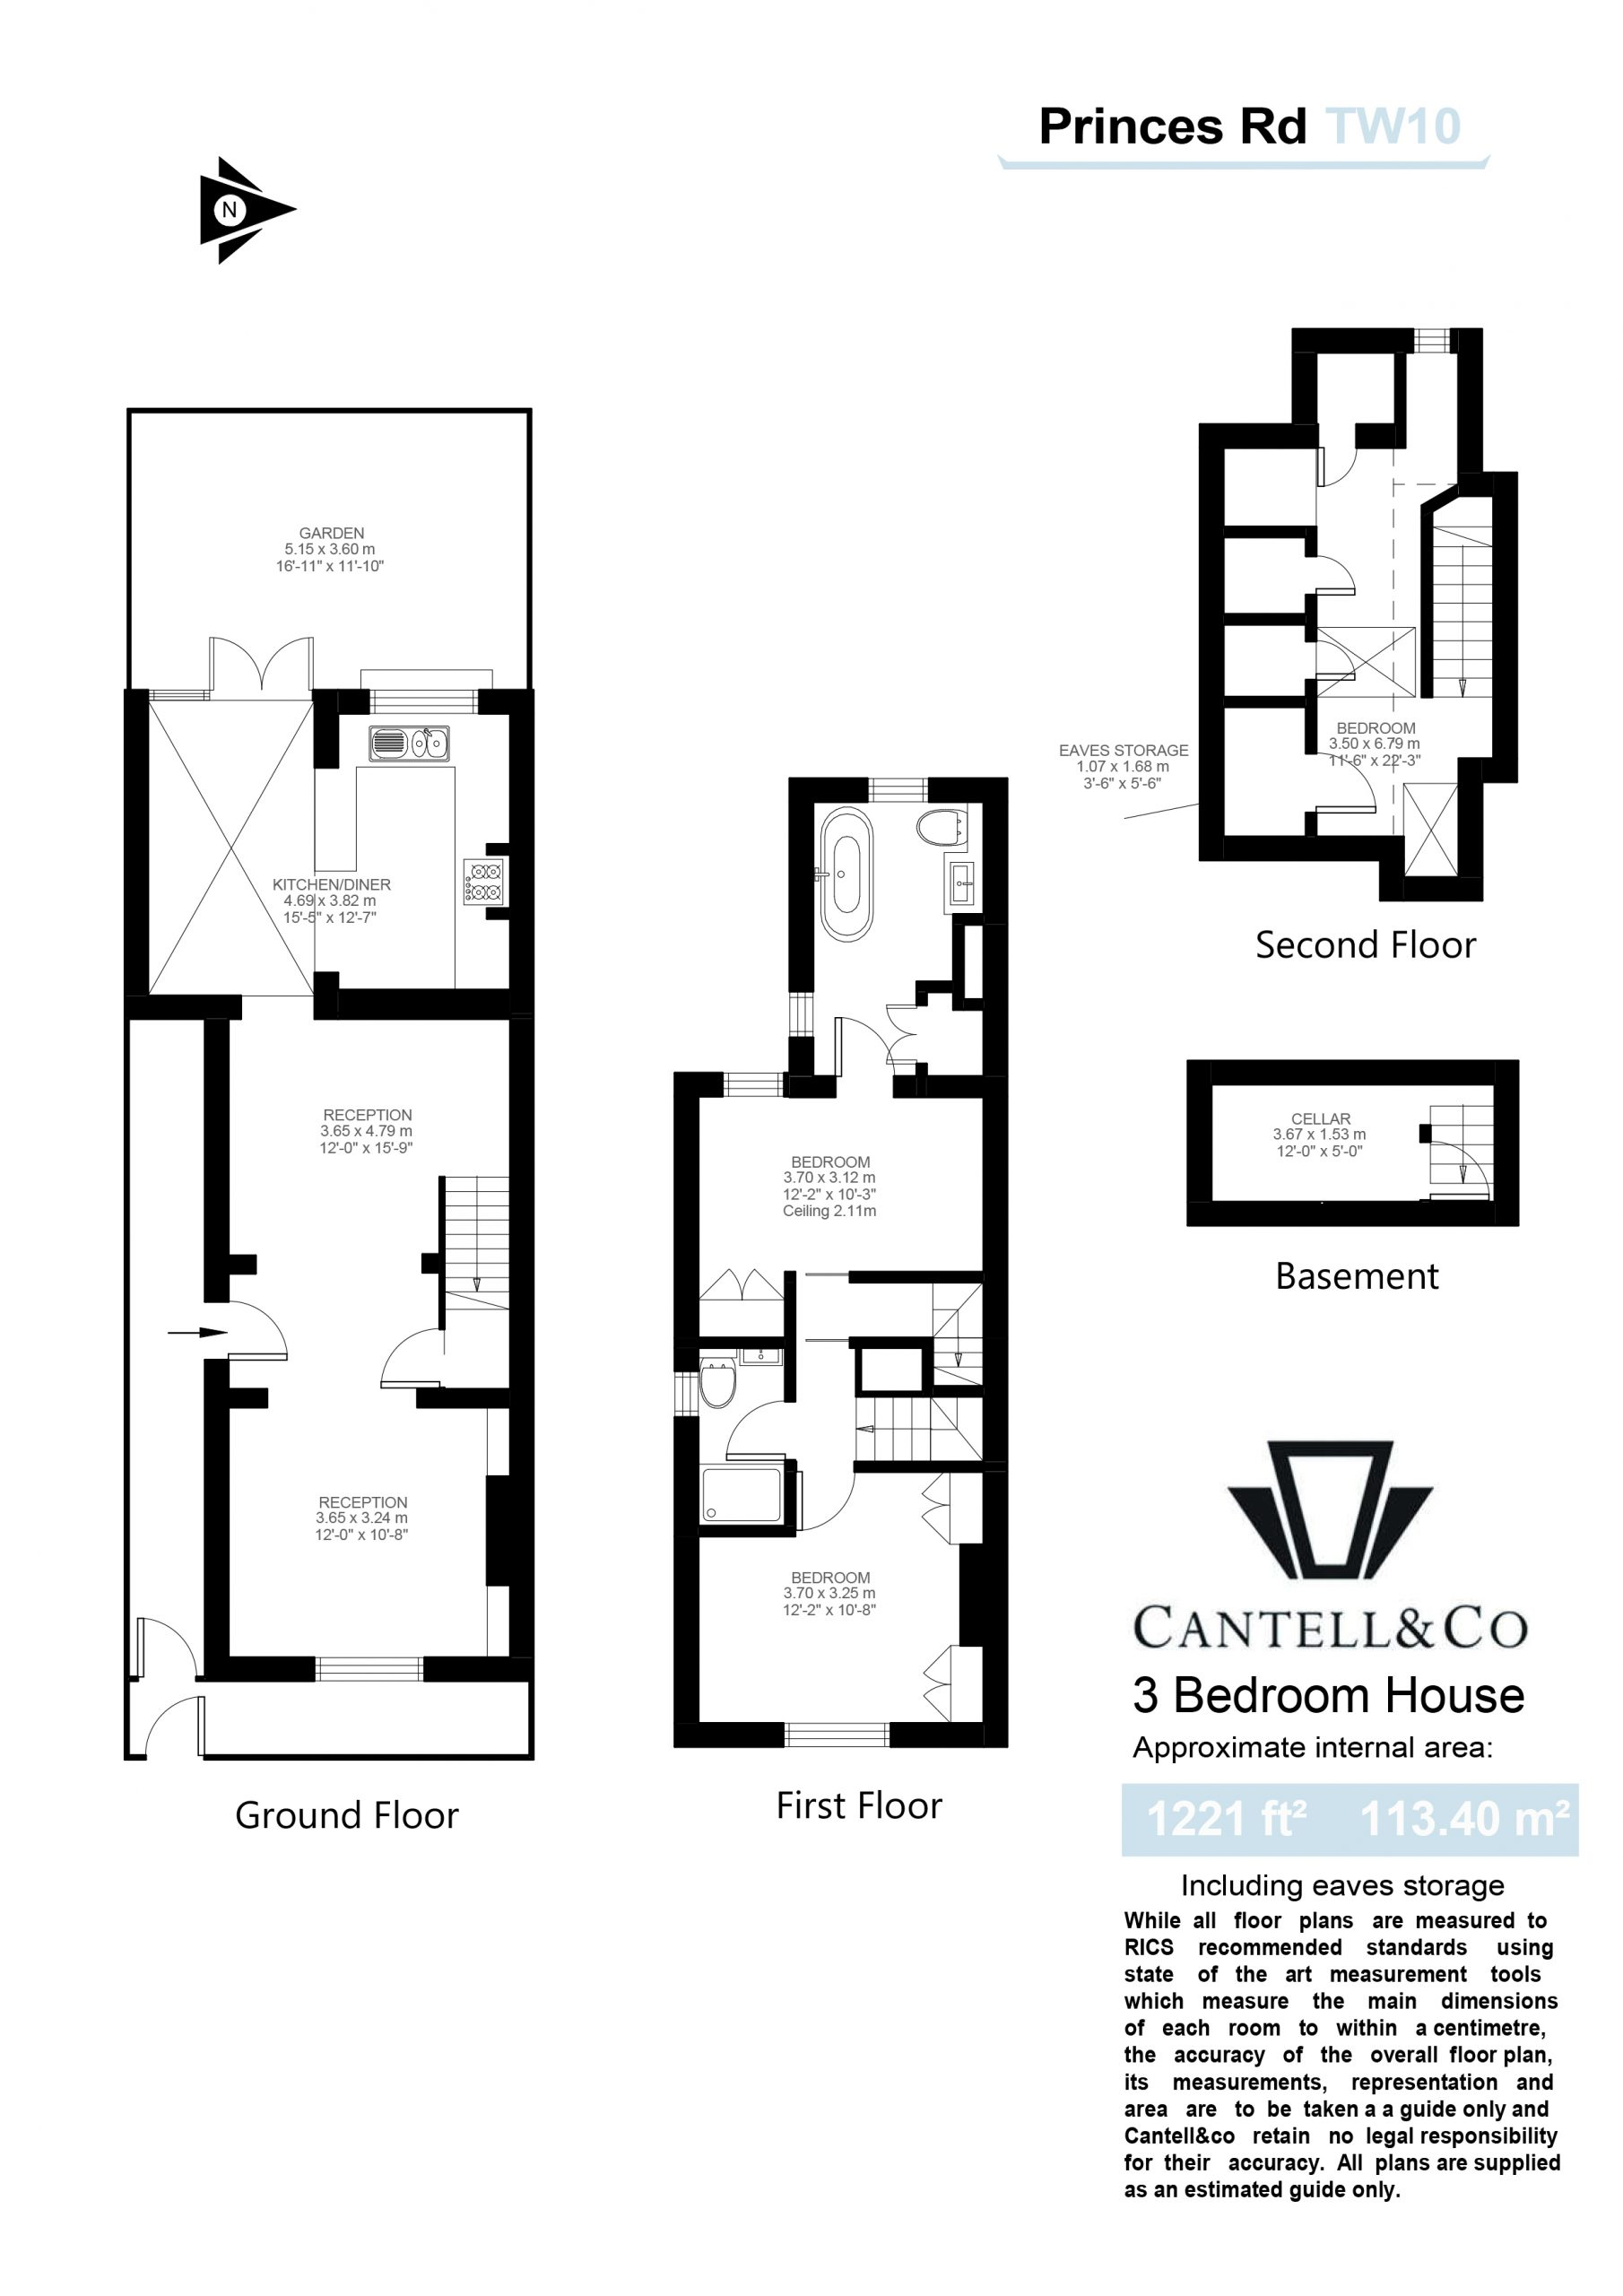 43 Princes Rd floorplan